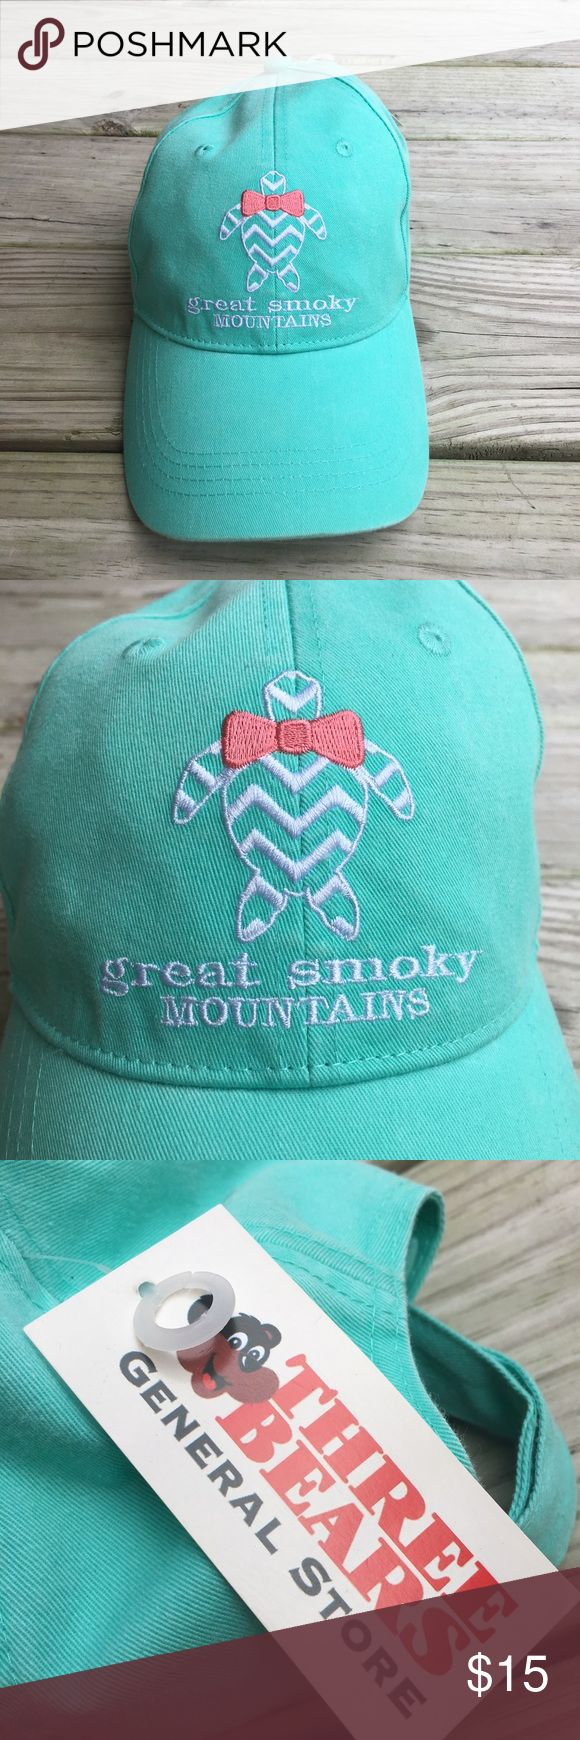 Teal Great Smoky Mountains Hat Cap Teal Great Smoky Mountains Hat Cap. New with tags!! Never worn. Accessories Hats